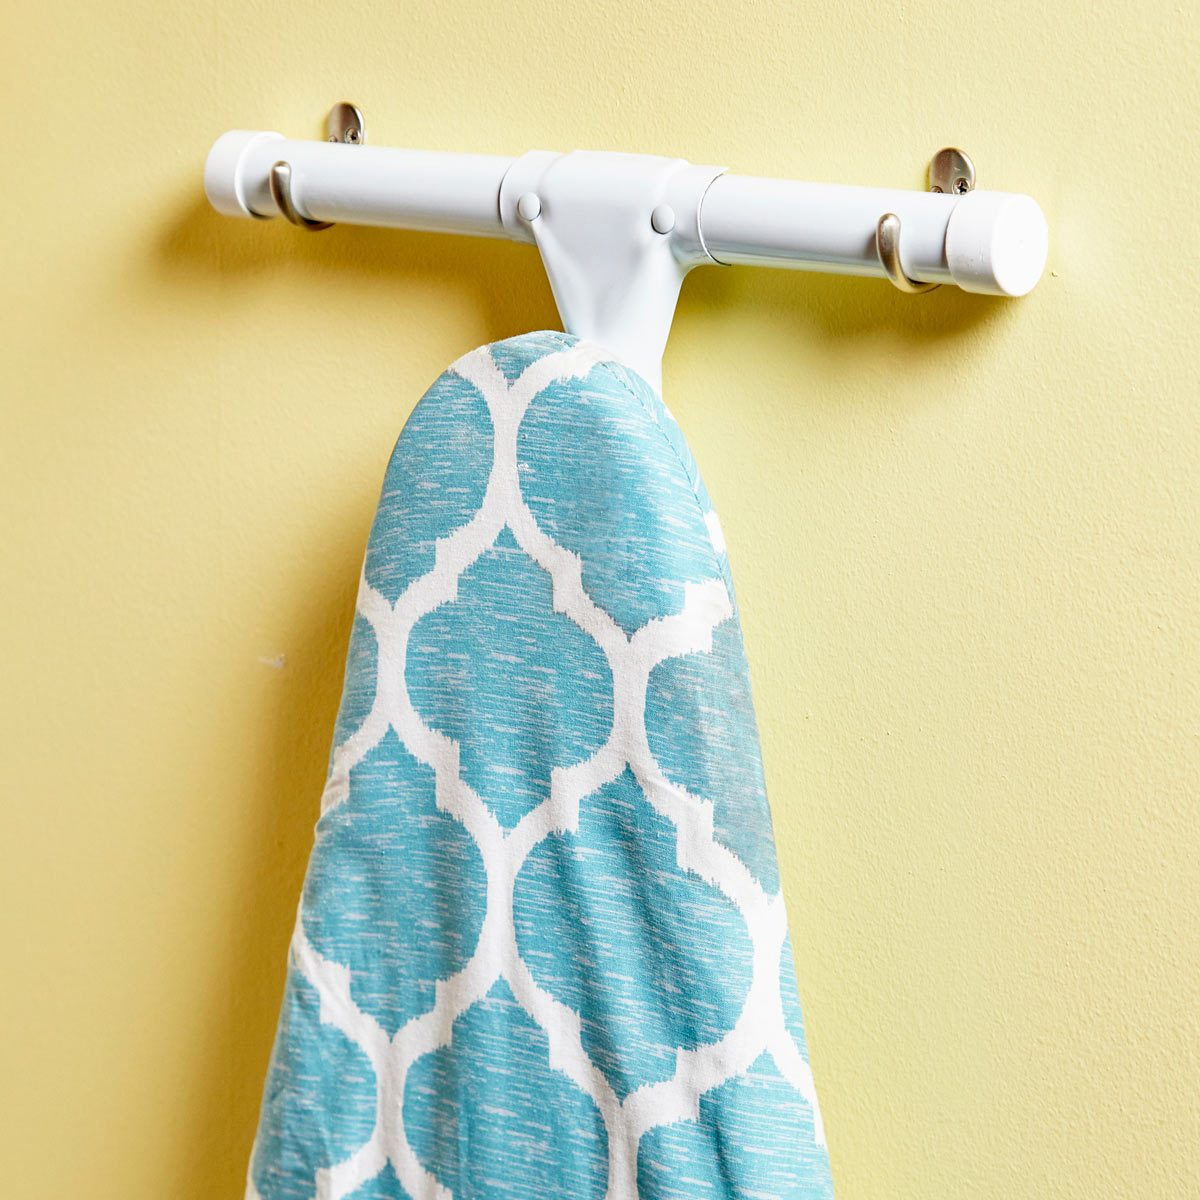 HH ironing board holder